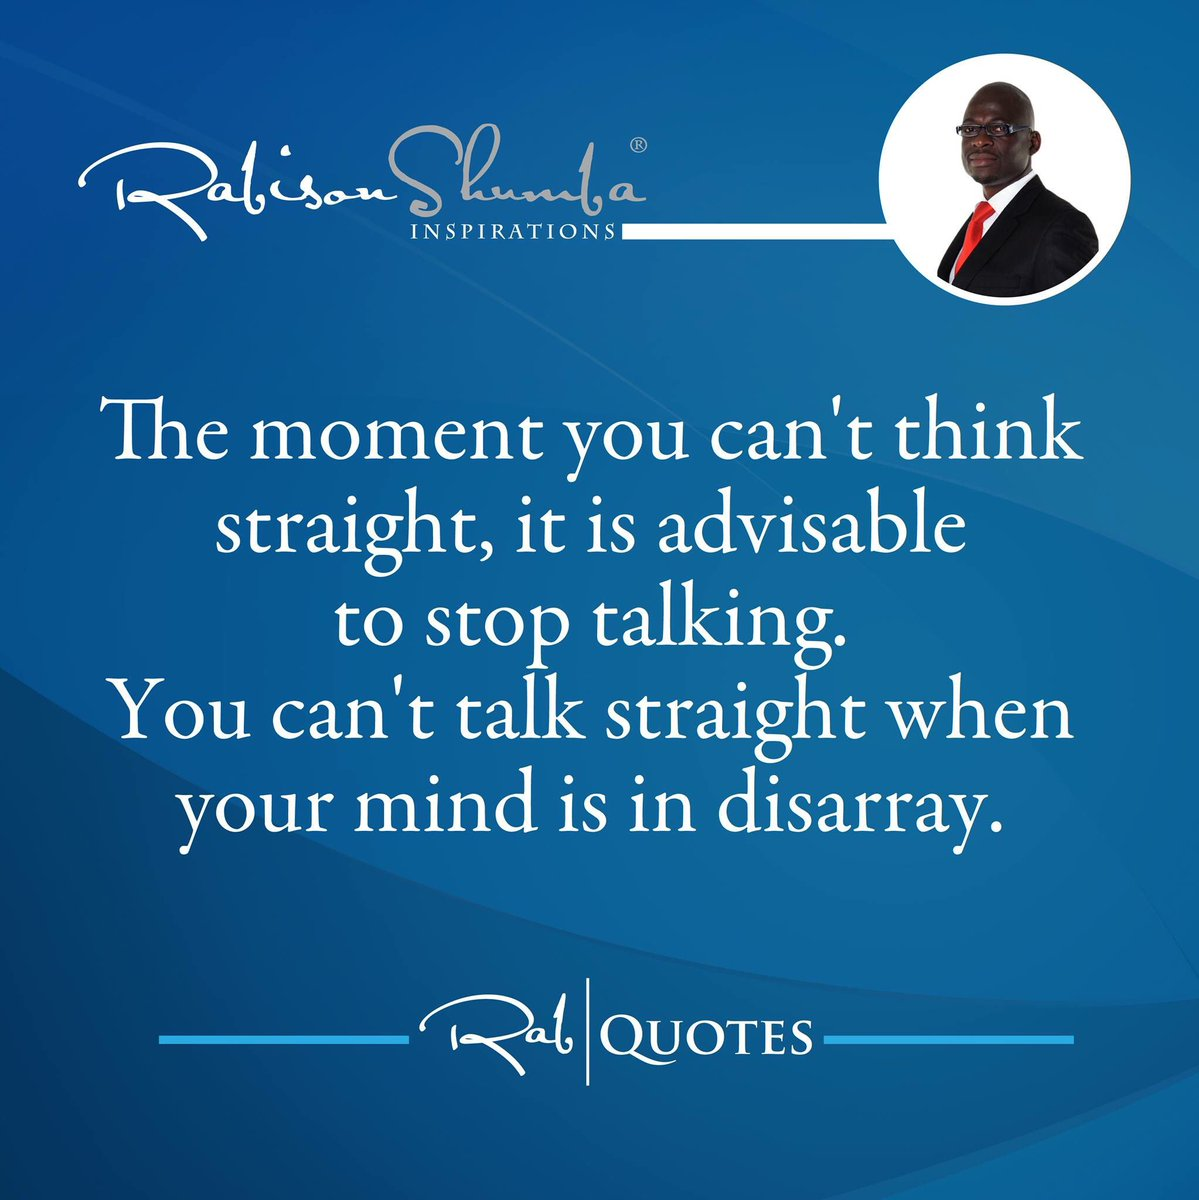 Maturity is in knowing when to talk and when to shut up. Don't be under pressure to talk. #RabCoaching https://t.co/9O7SBlfnRl